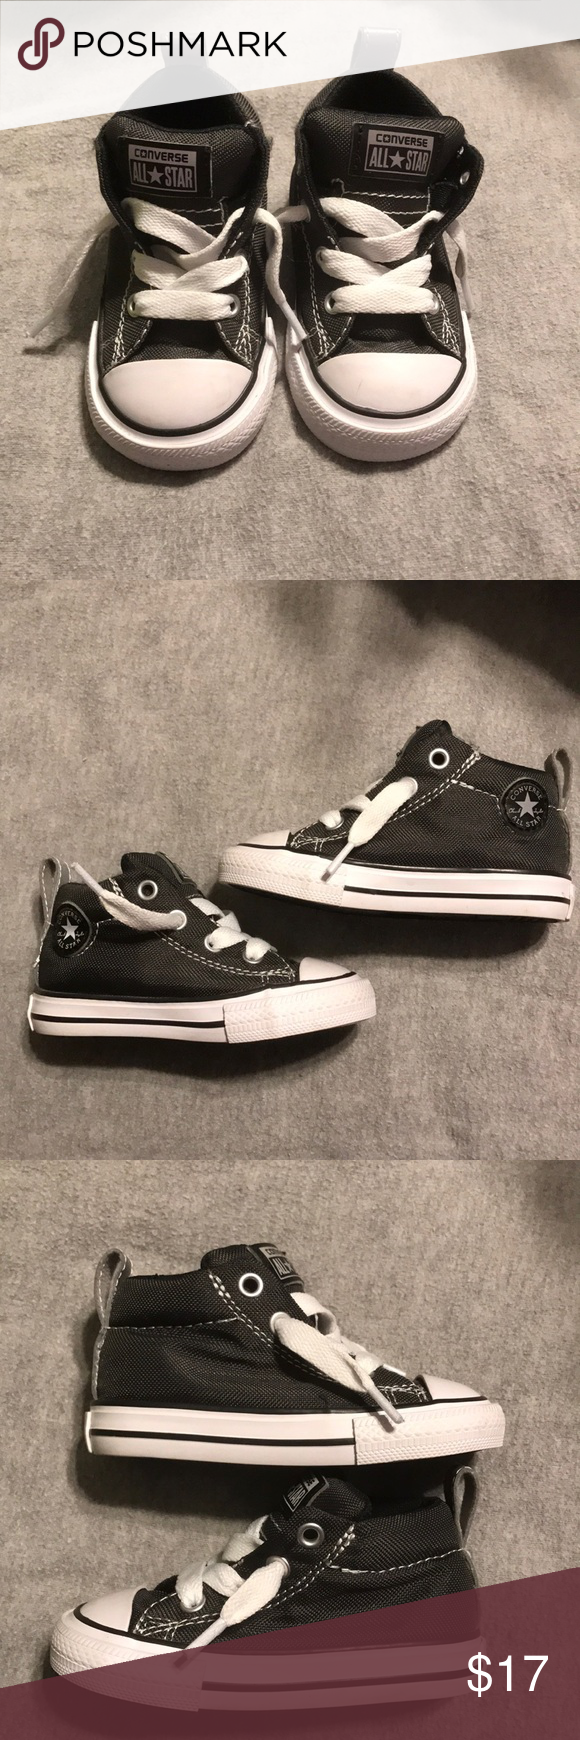 converse for one year old